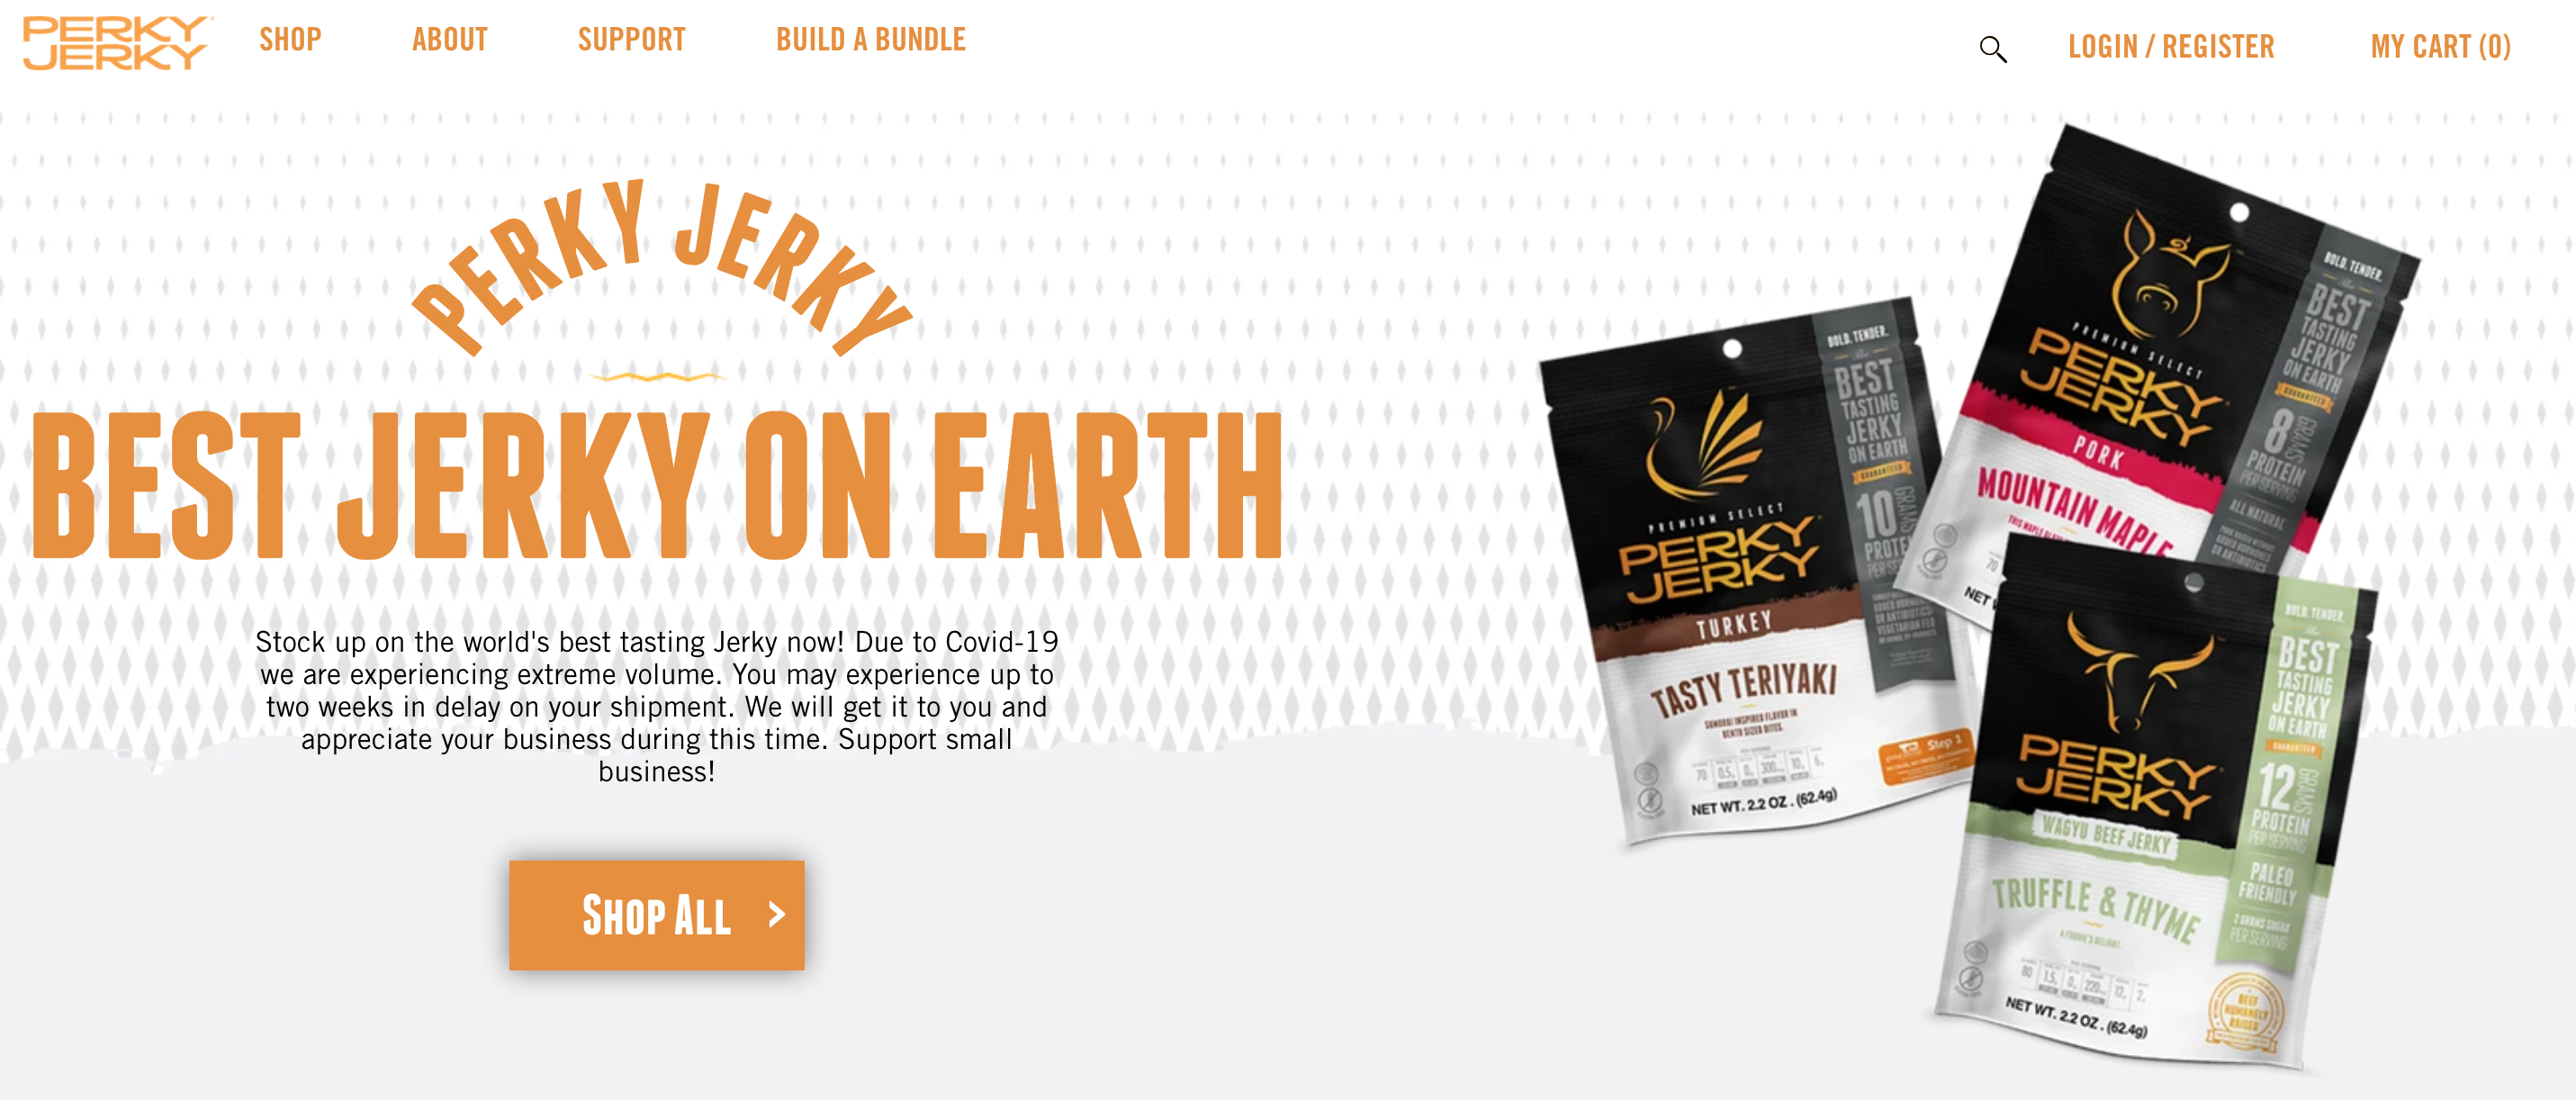 Perky Jerky snack 2020 trending products